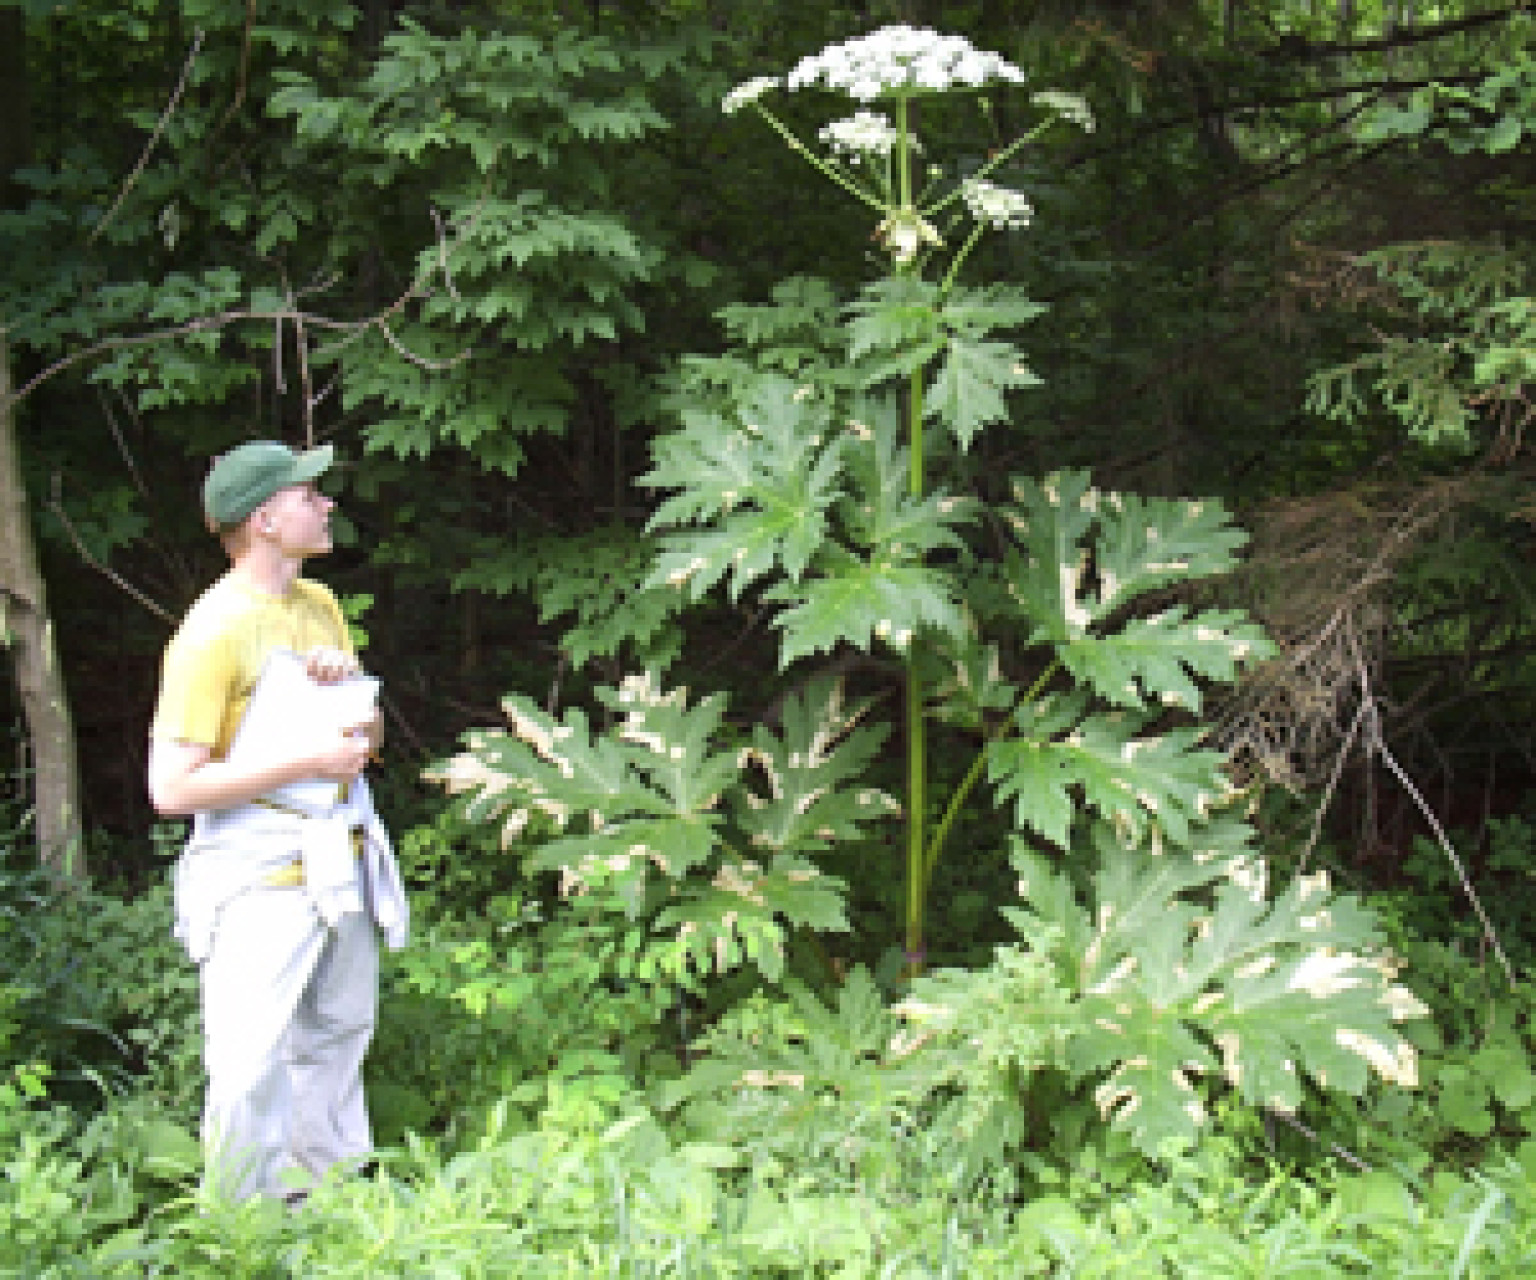 New York State Sales Tax Rate >> Giant Hogweed Plant May Cause Blindness, Severe Skin Irritation And Scarring -- So Don't Touch It